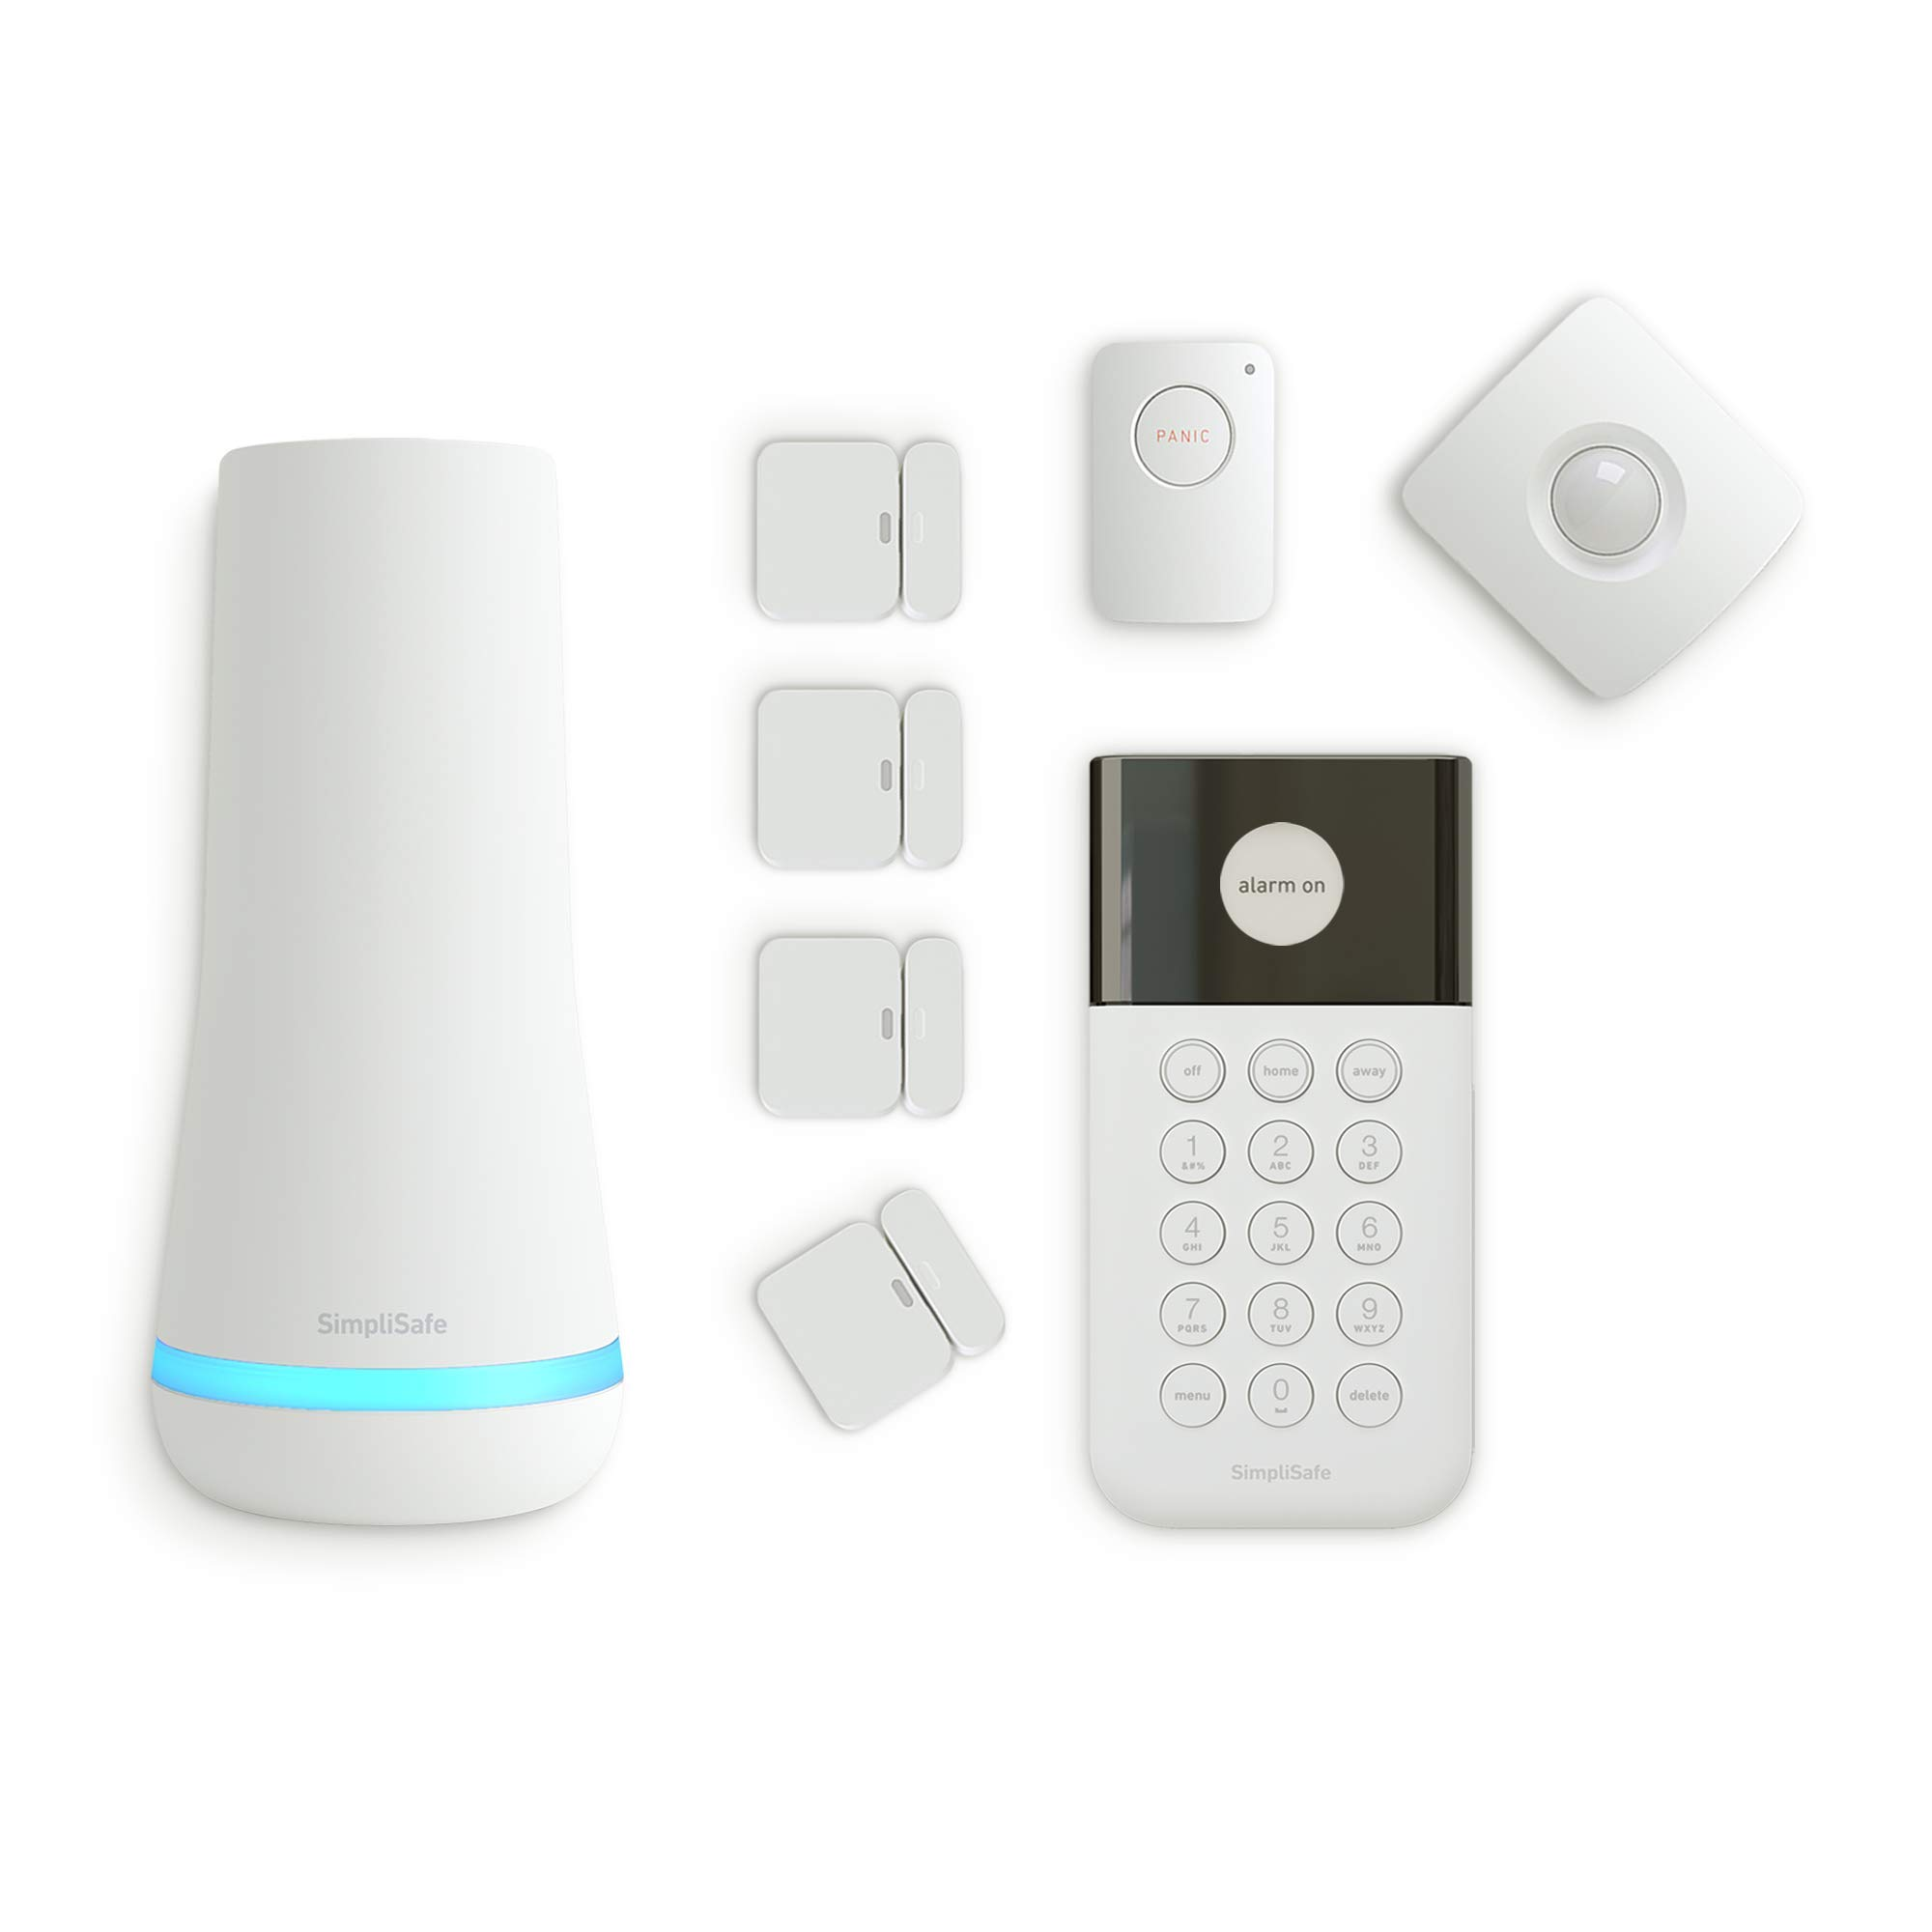 SimpliSafe 8 Piece Wireless Home Security System - Optional 24/7 Professional Monitoring - No Contract - Compatible with Alexa and Google Assistant by SimpliSafe